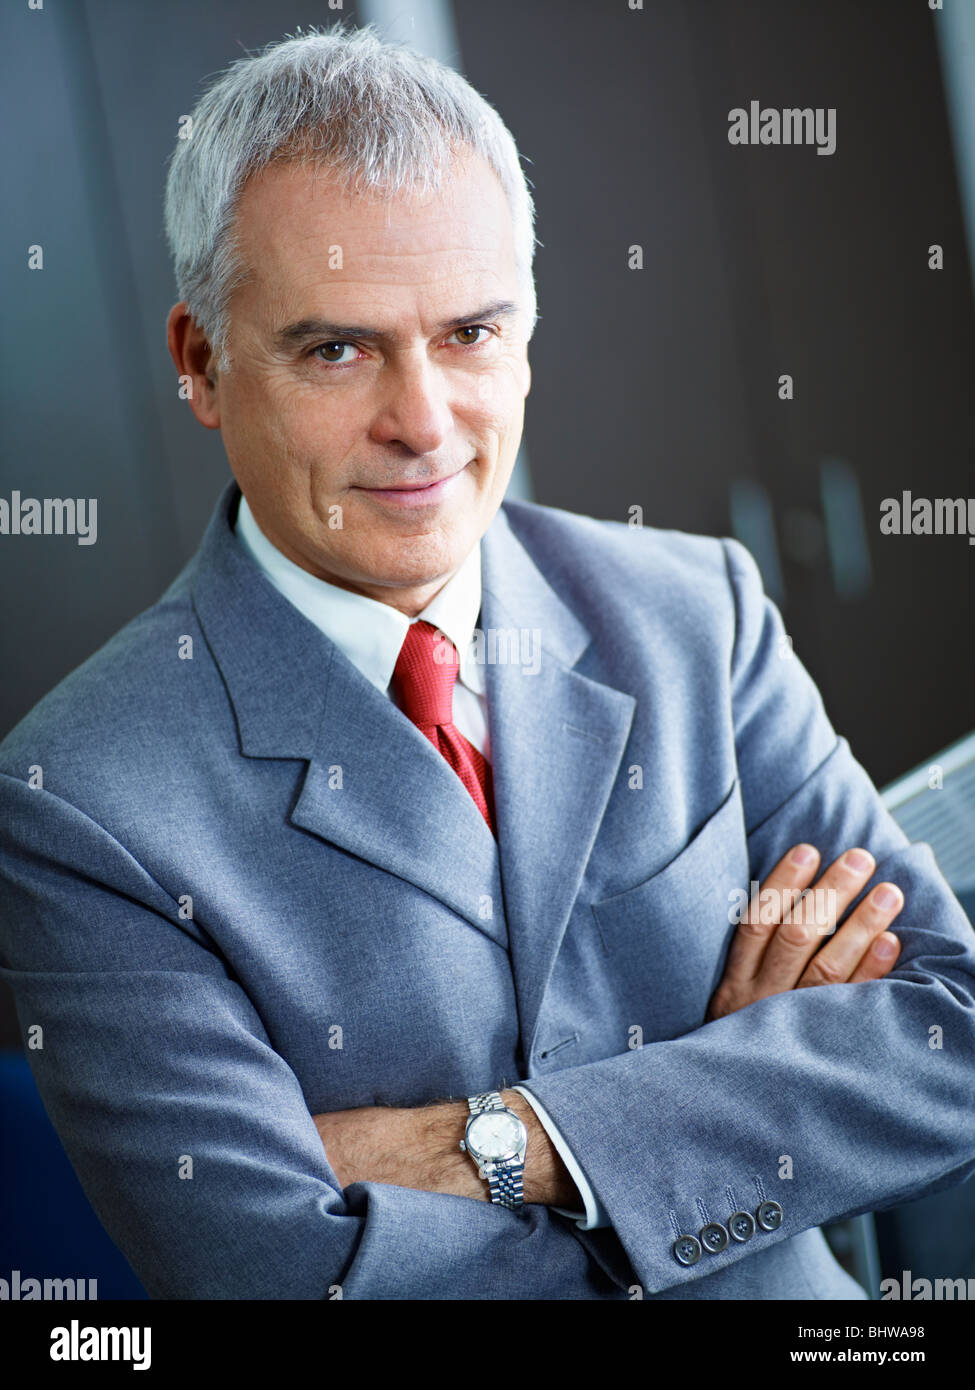 Portrait of mature man with arms folded, looking at camera. Copy space Banque D'Images